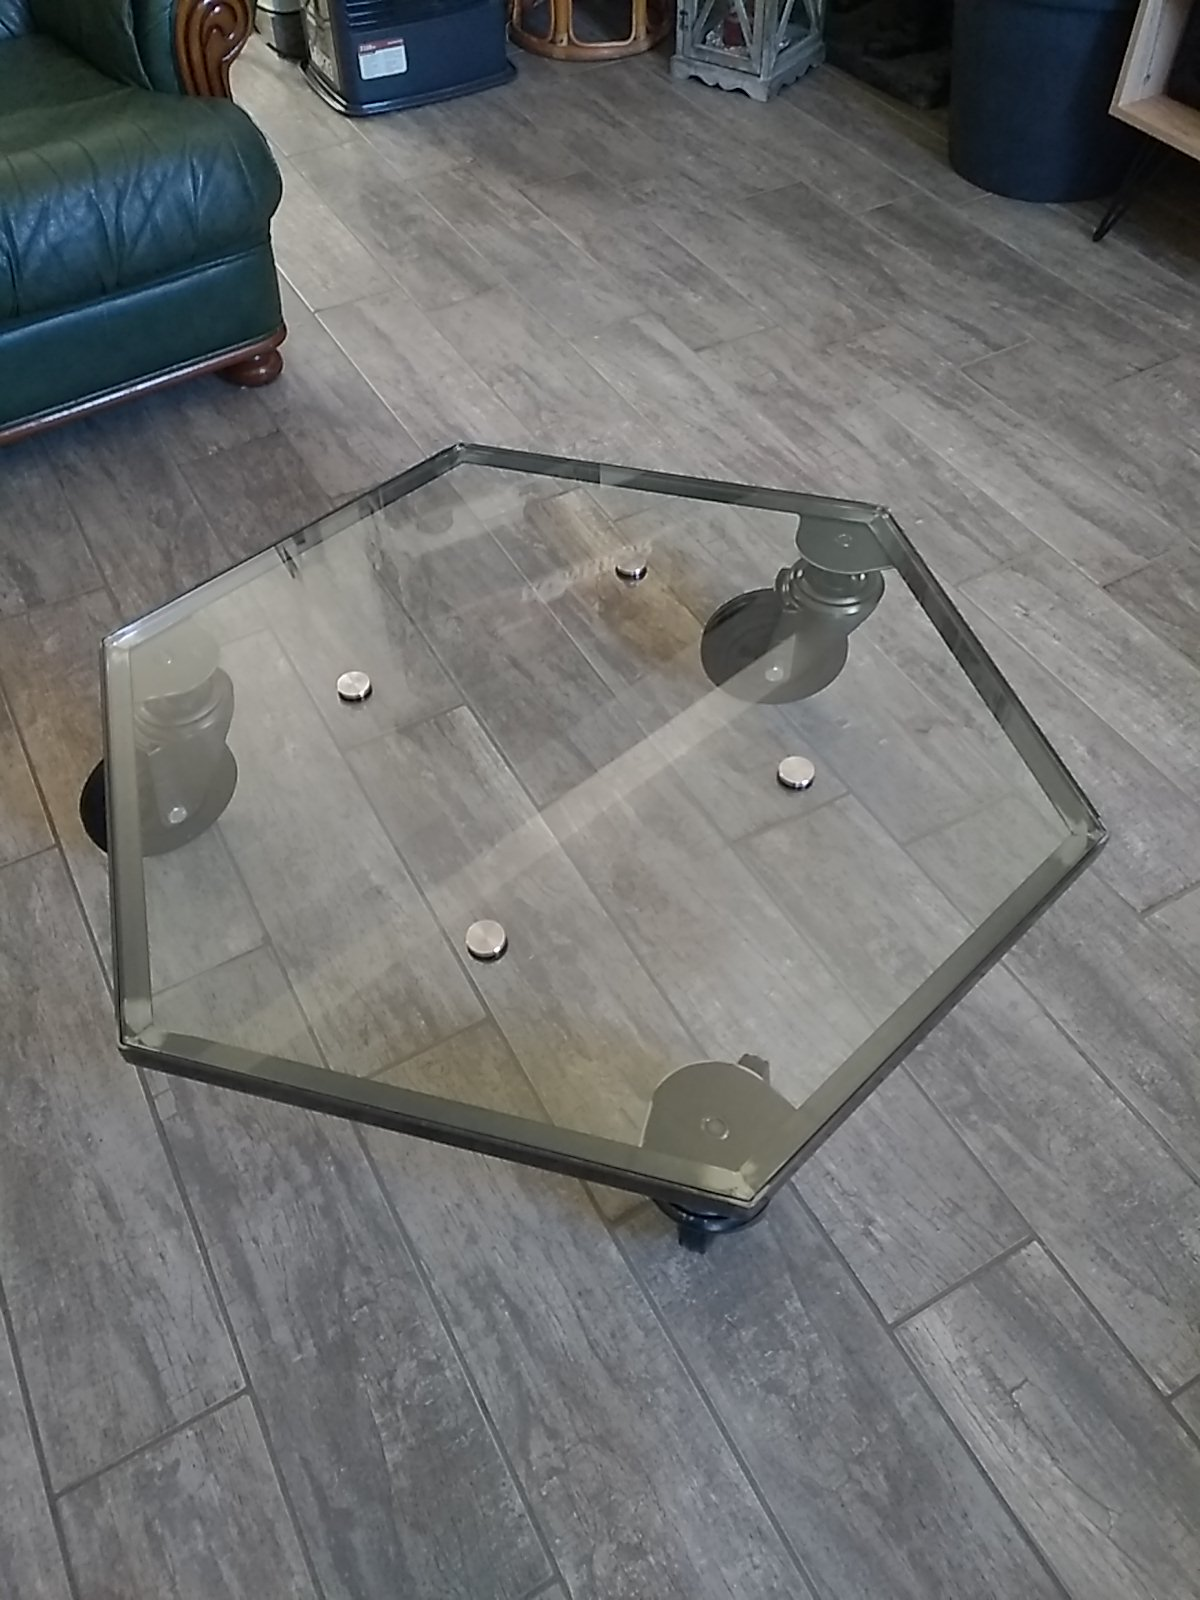 PLATEAU EN VERRE RECYCLE EN TABLE BASSE